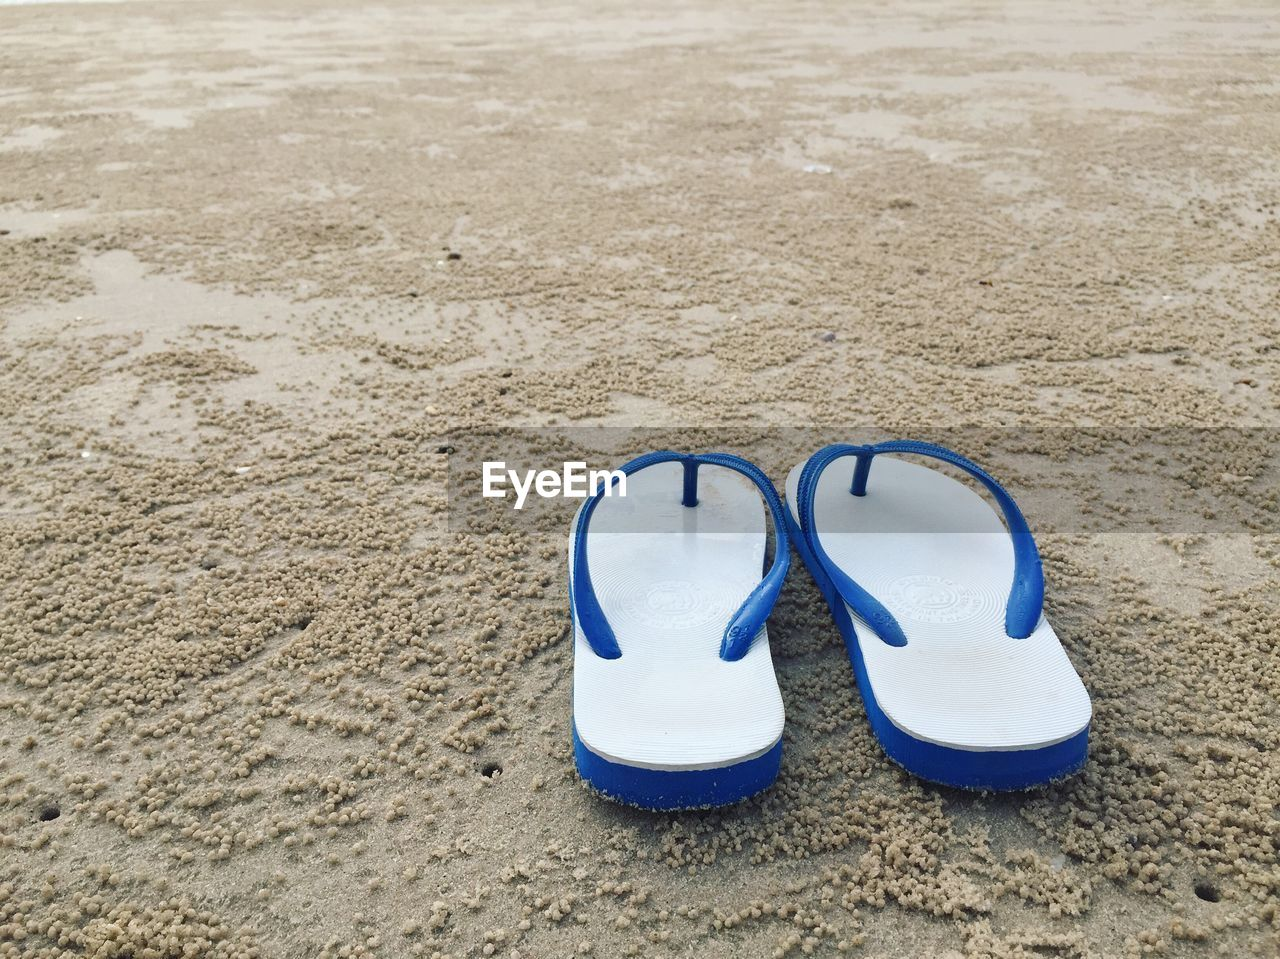 sand, land, blue, beach, pair, shoe, absence, no people, nature, sandal, two objects, flip-flop, still life, personal accessory, close-up, day, tranquility, slipper, outdoors, compatibility